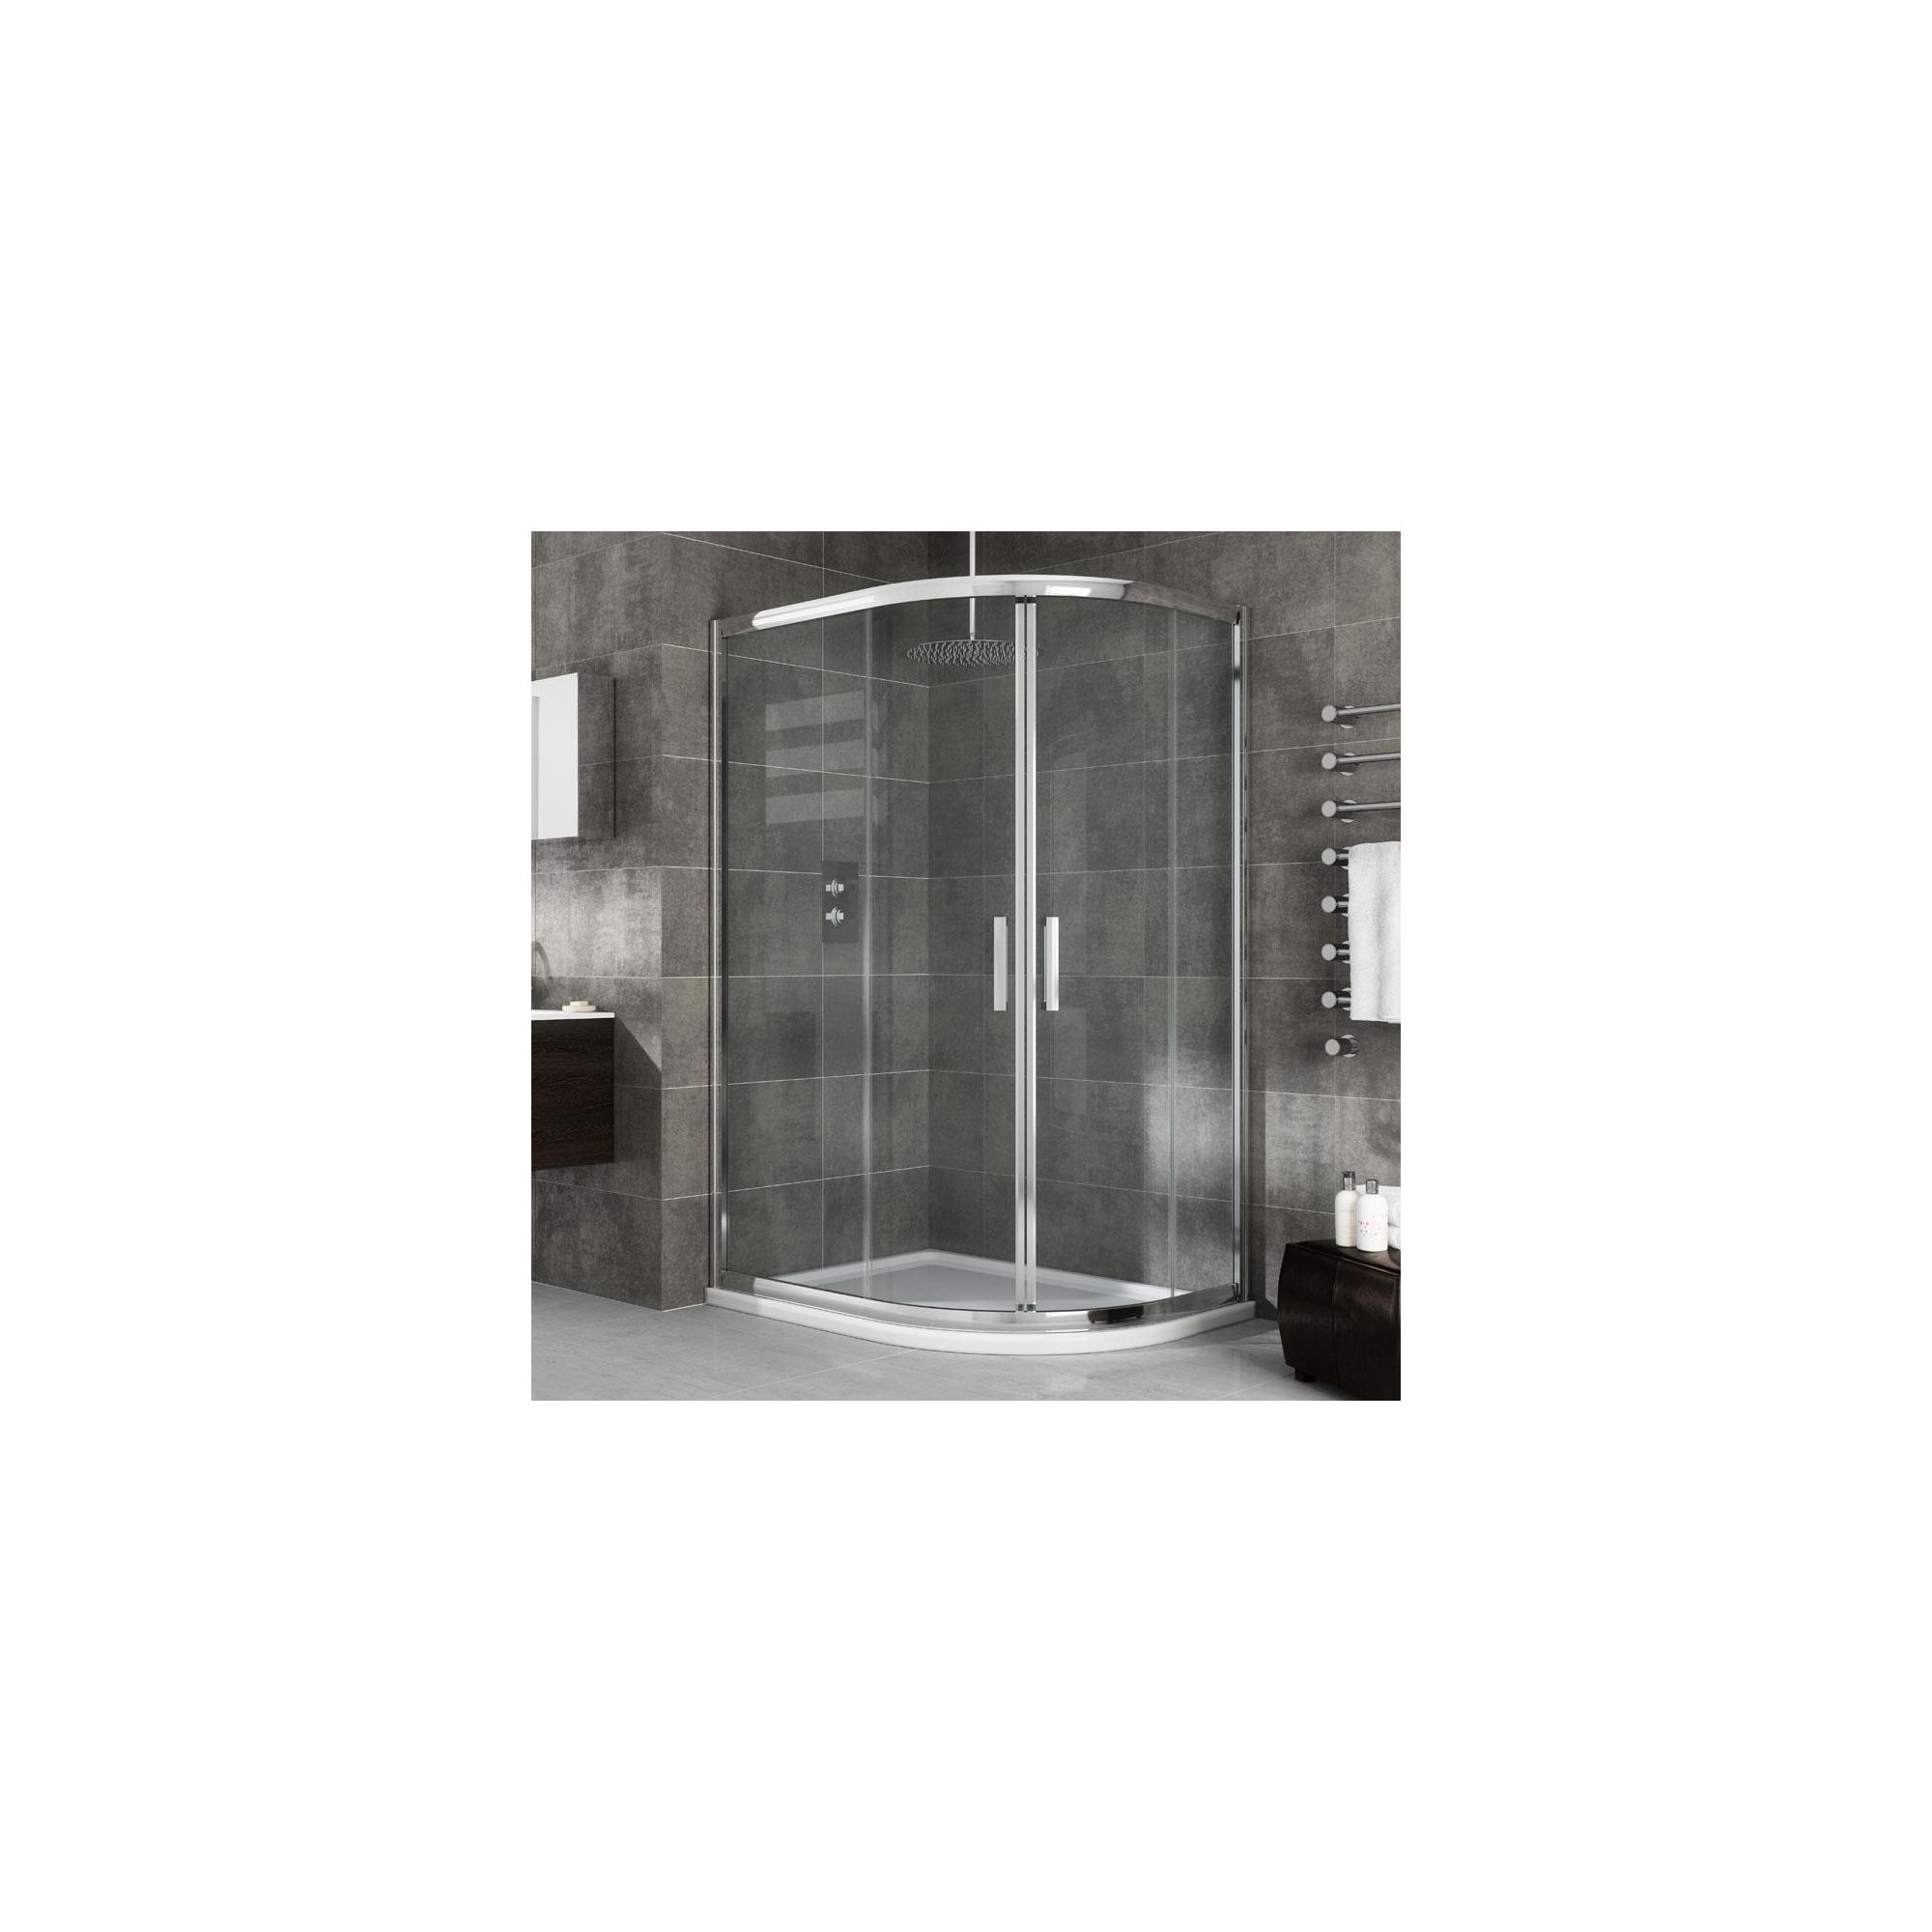 Elemis Eternity Offset Quadrant Shower Enclosure, 900mm x 800mm, 8mm Glass, Low Profile Tray, Left Handed at Tesco Direct